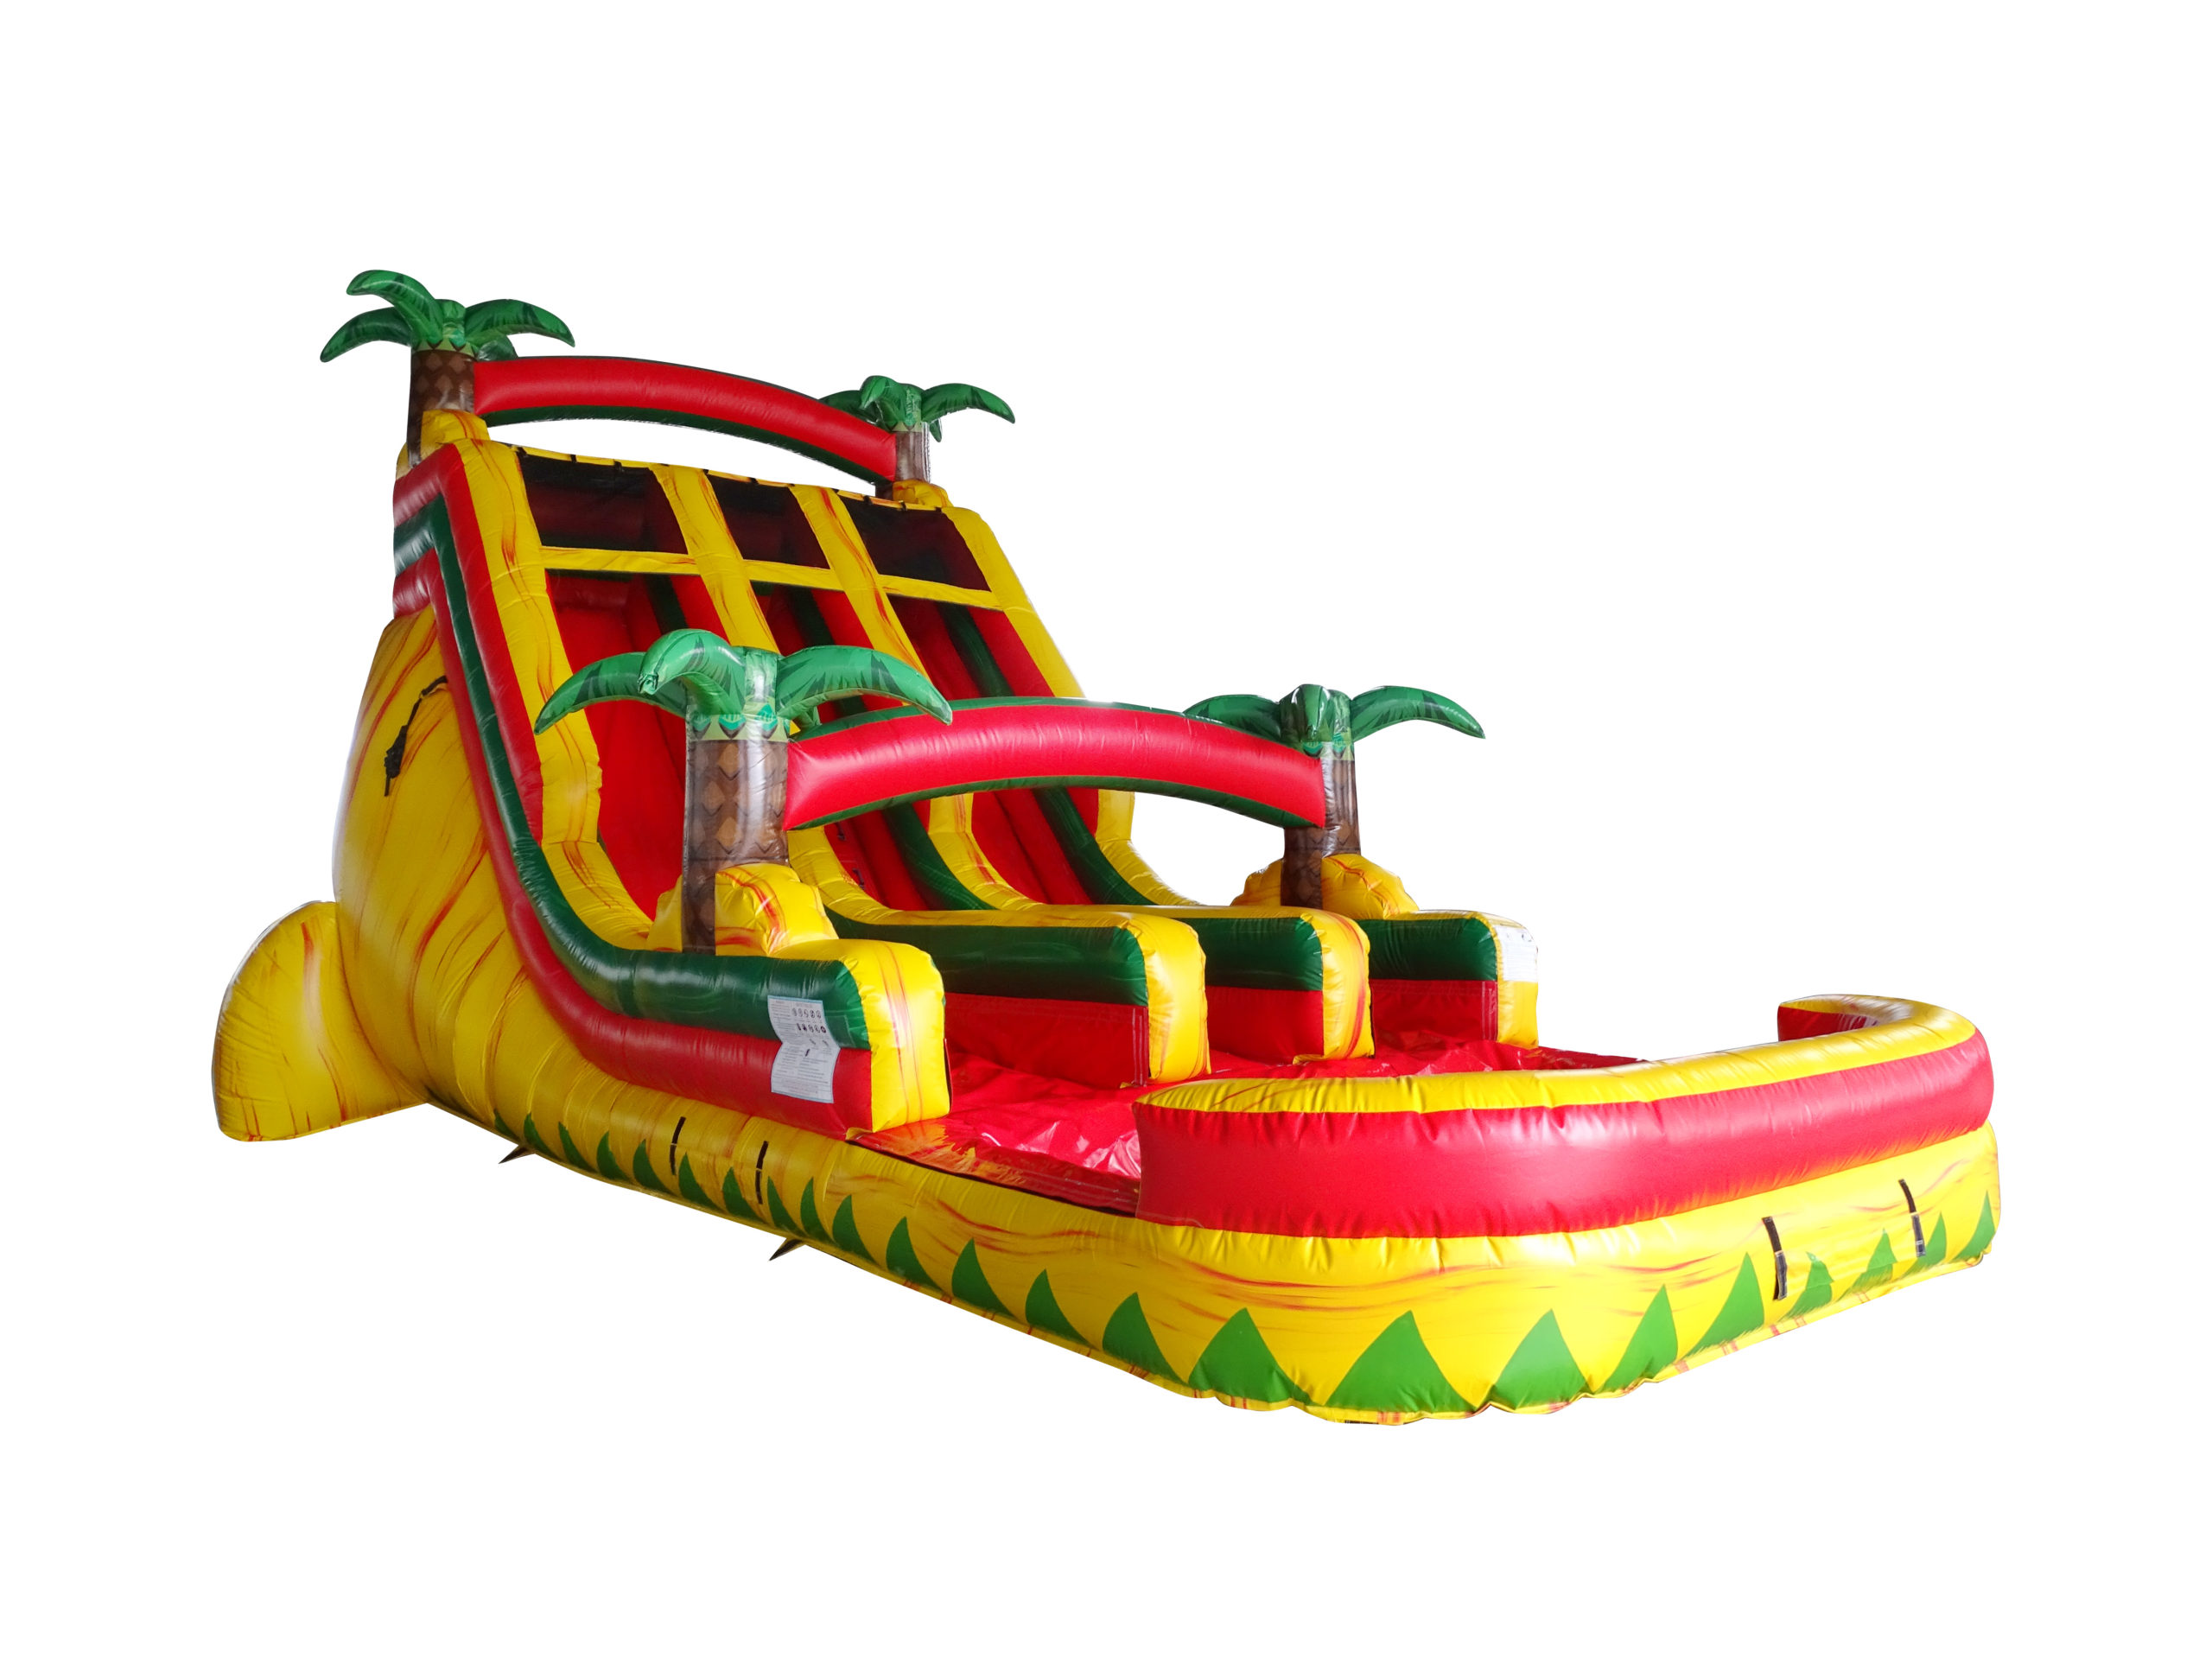 18ft-Rasta-Splash-1-2-scaled